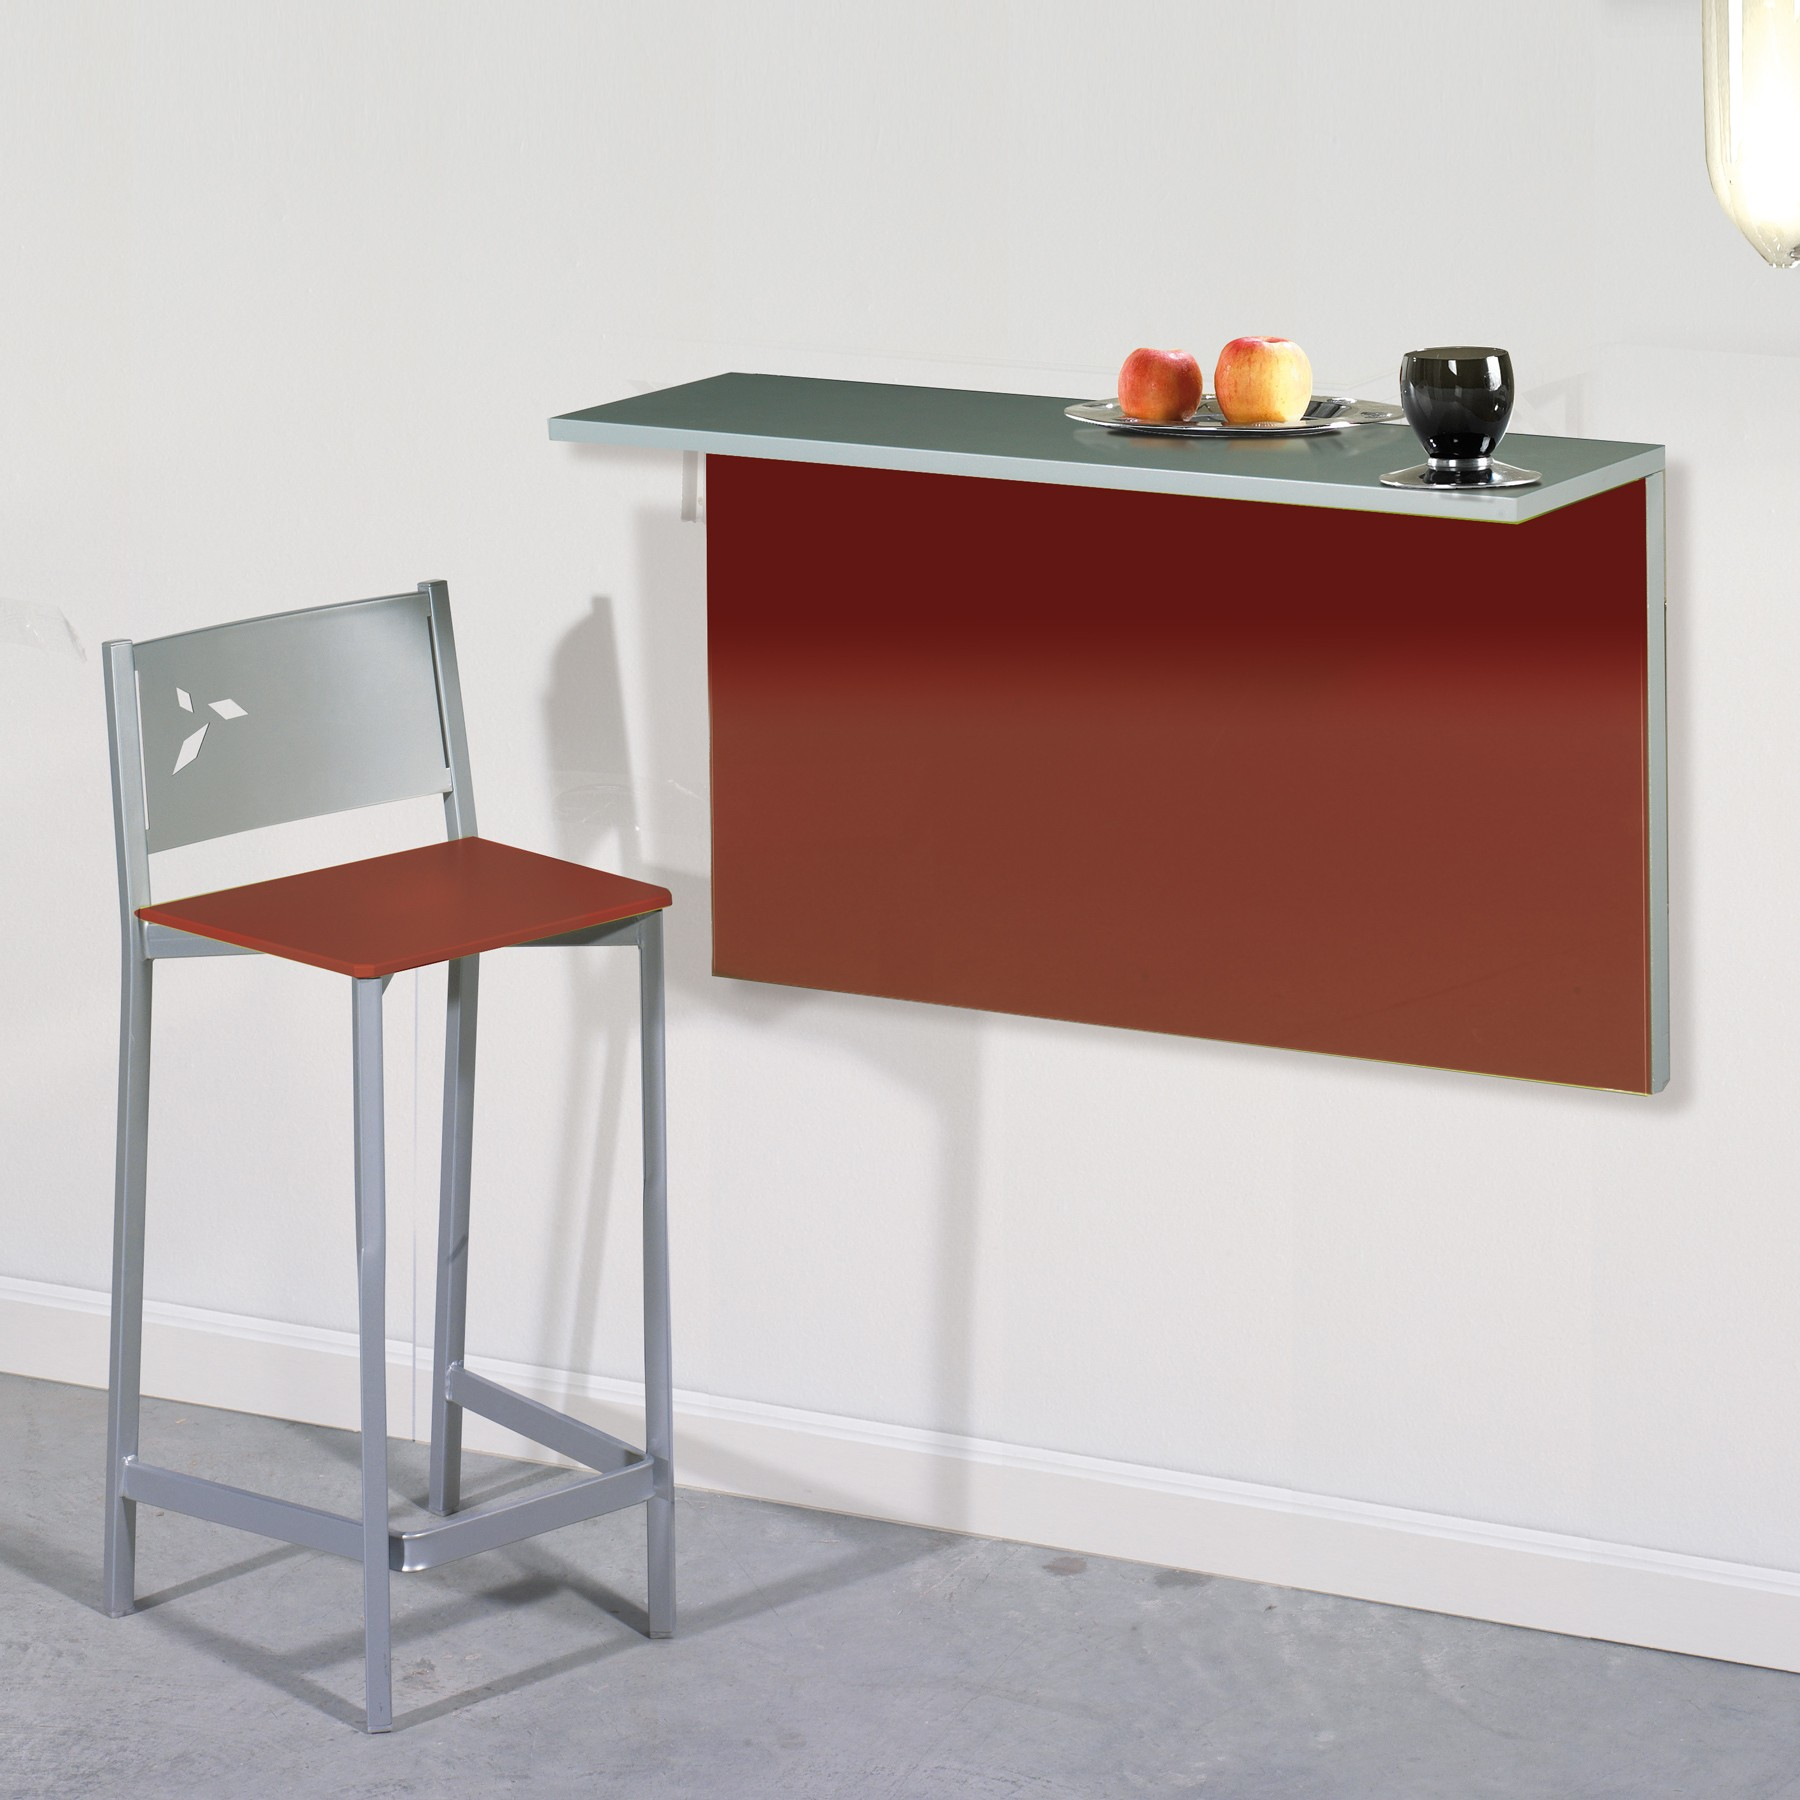 Mesa Plegable A Pared Mesa De Cocina Plegable De Pared Con 2 Posiciones Dkg